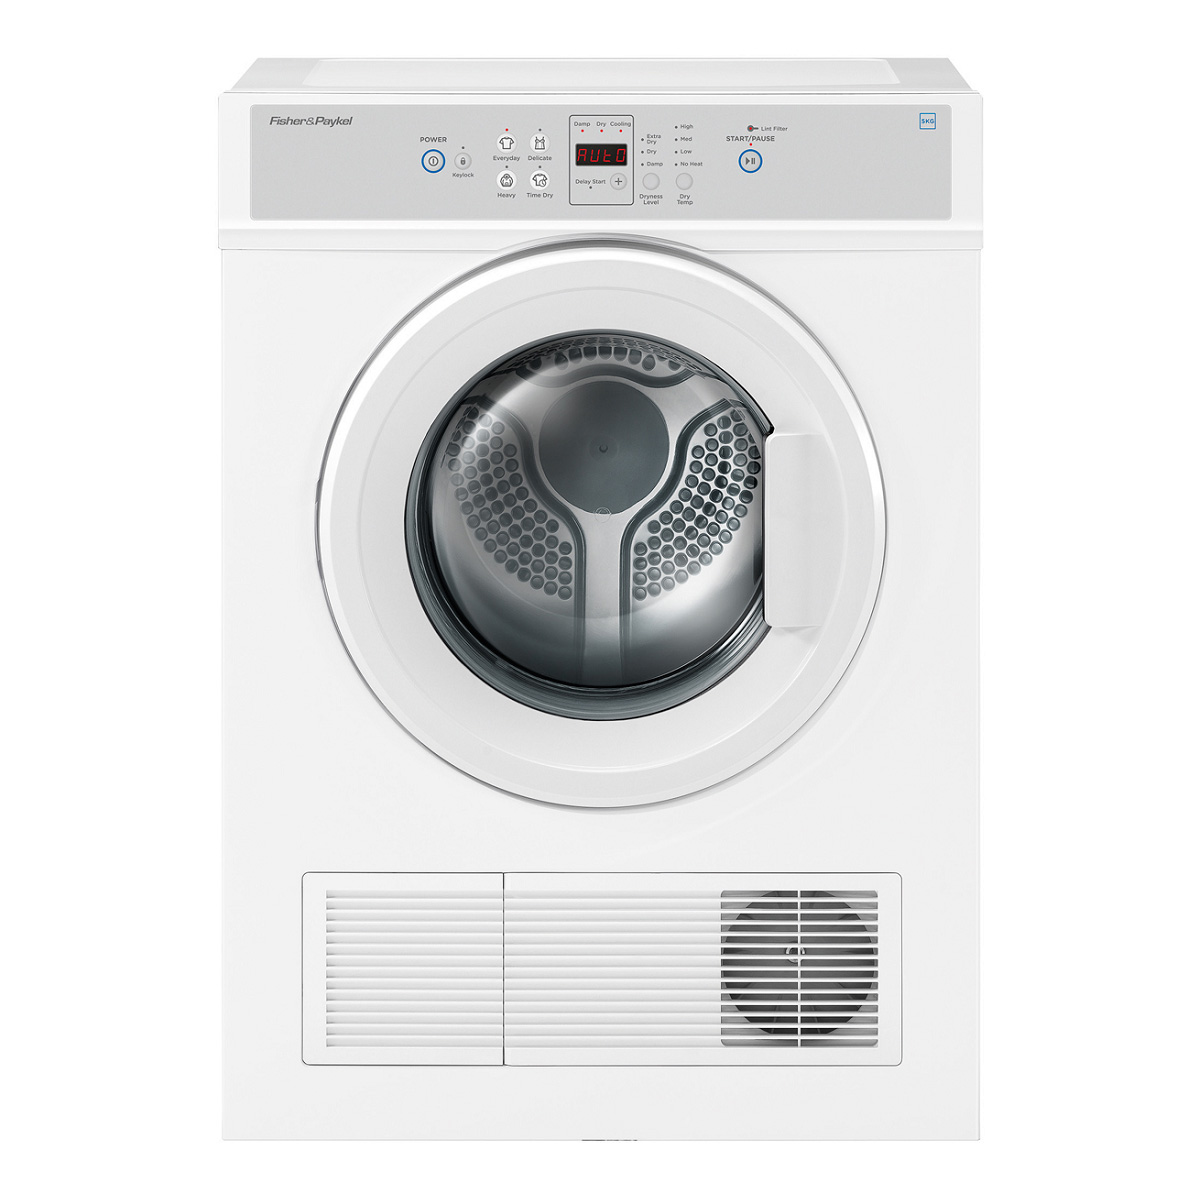 Fisher & Paykel DE5060M1 5kg Vented Dryer